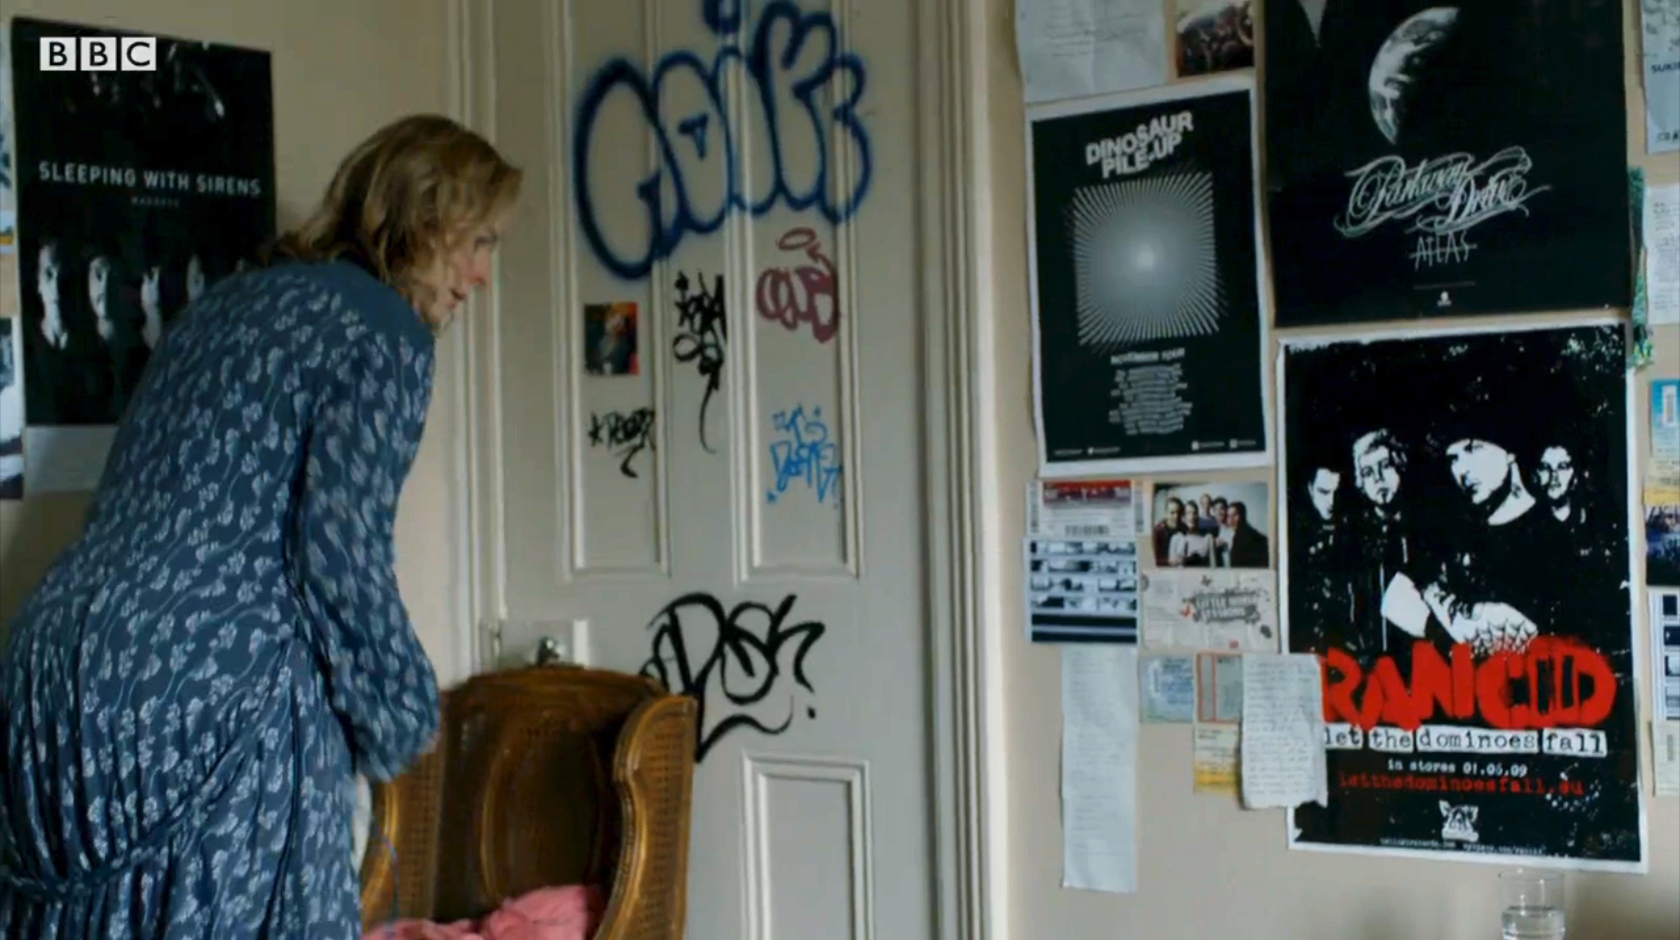 Adam's bedroom - 'ski holiday'composite photos, graffiti/tagging, posters and dressing.